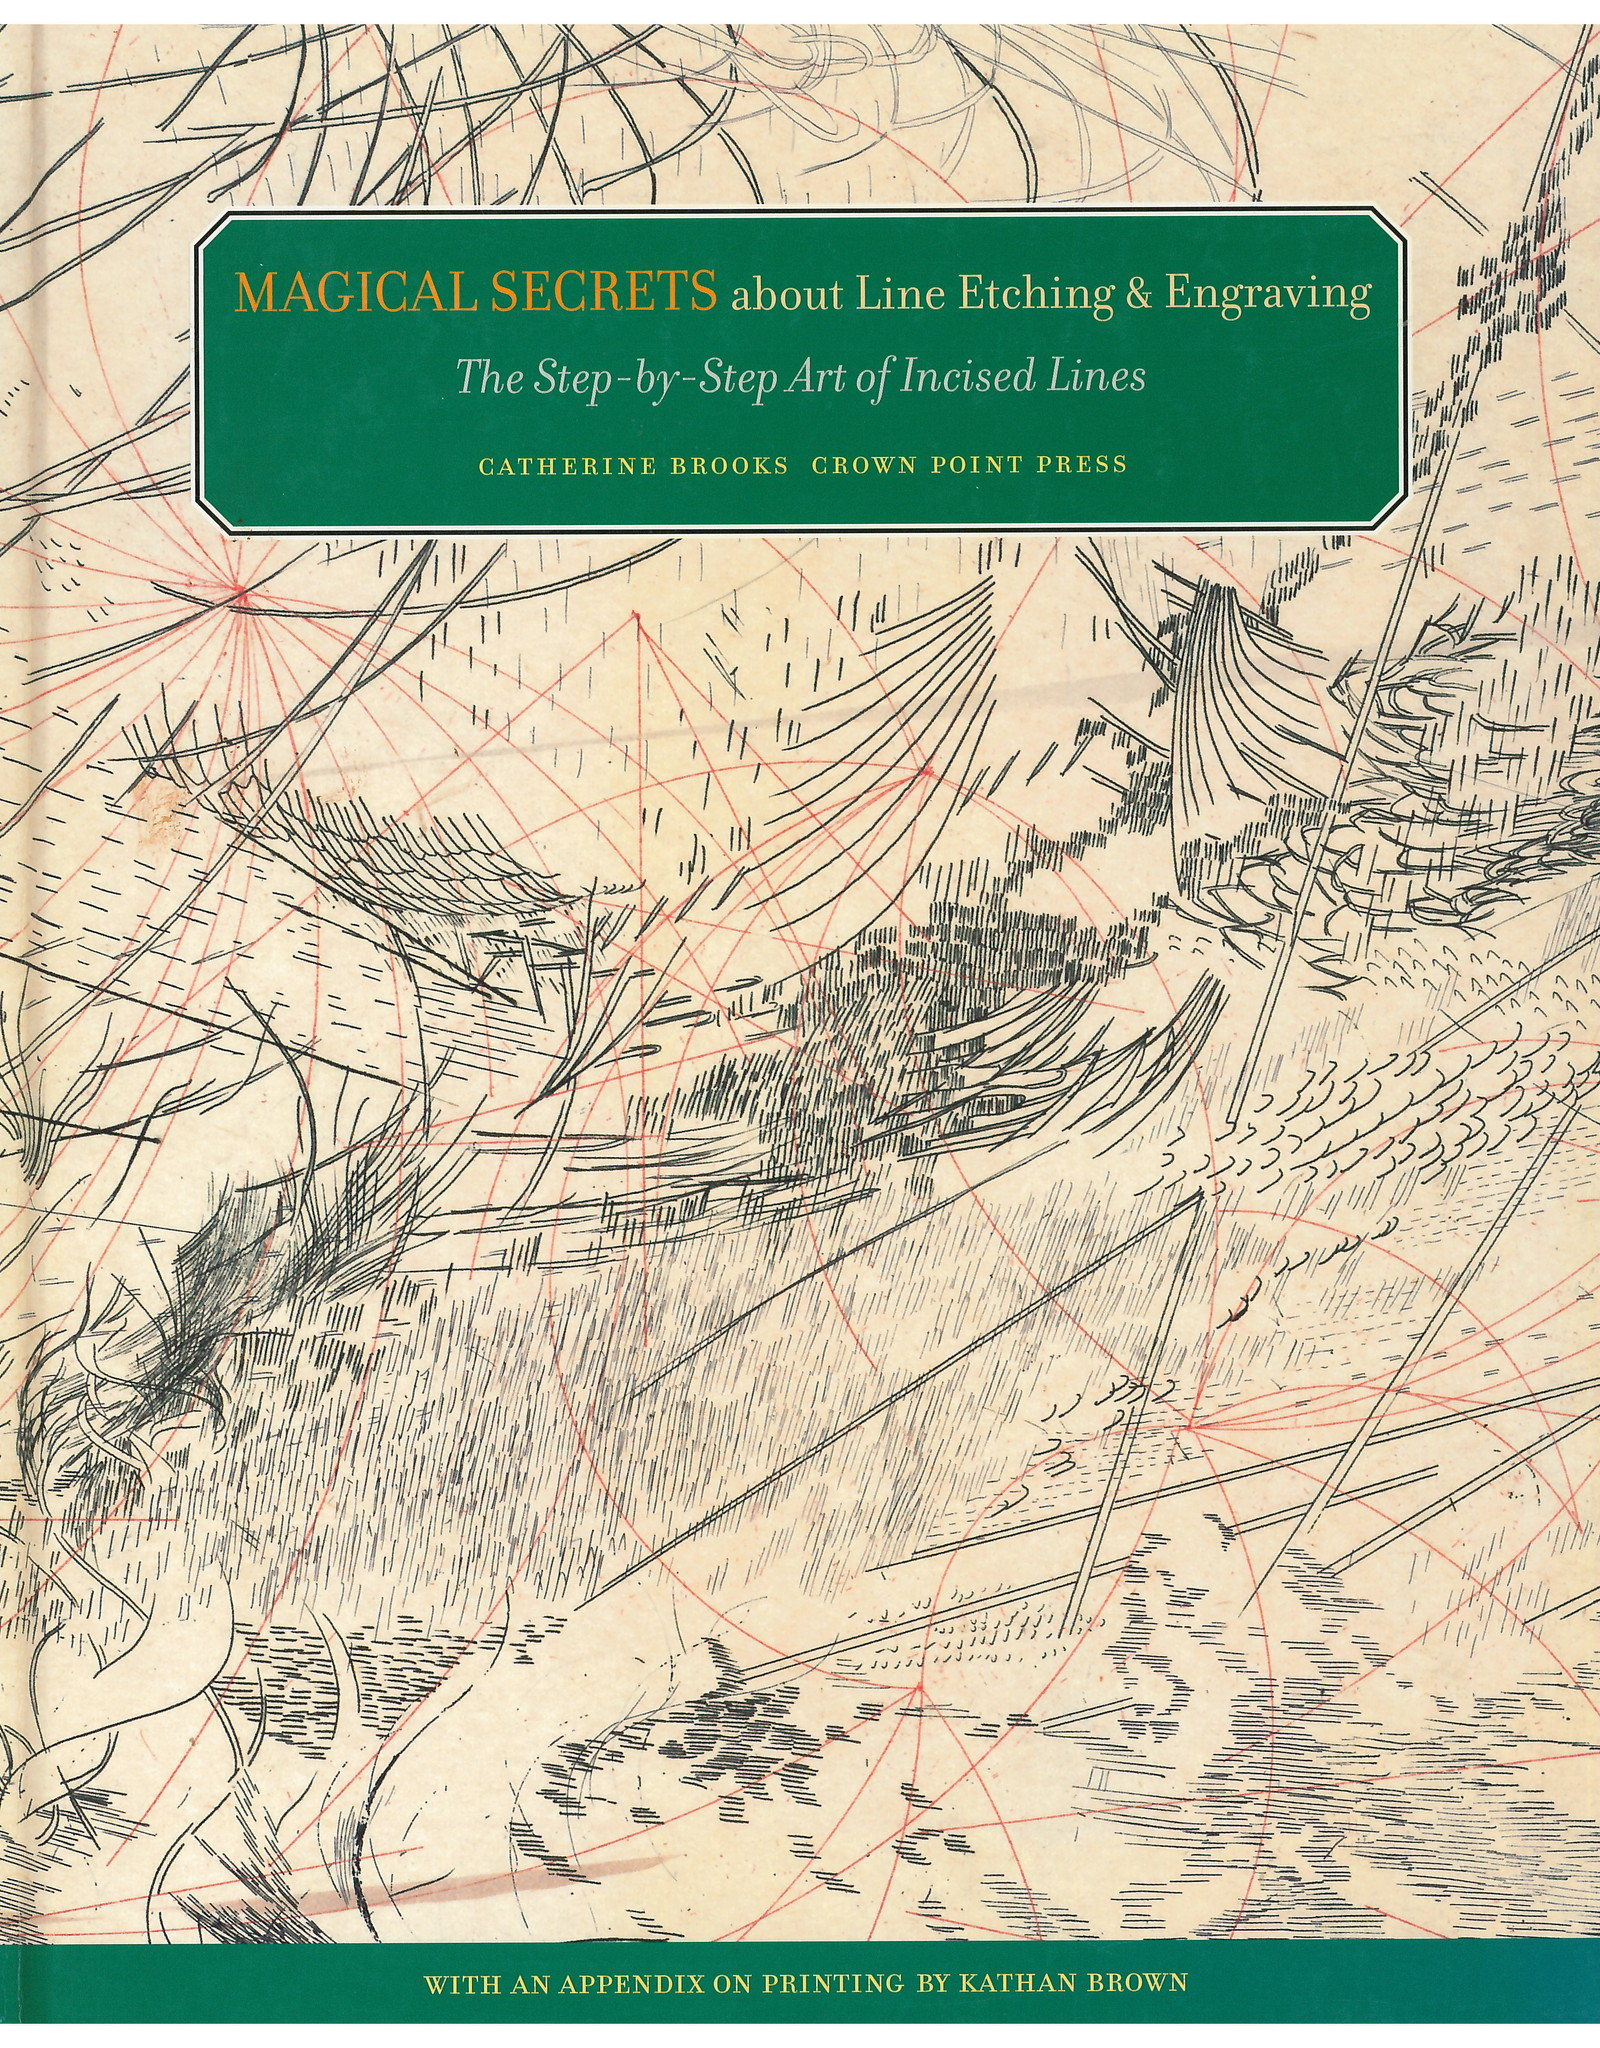 Magical Secrets About Line Etching / Catherine Brooks